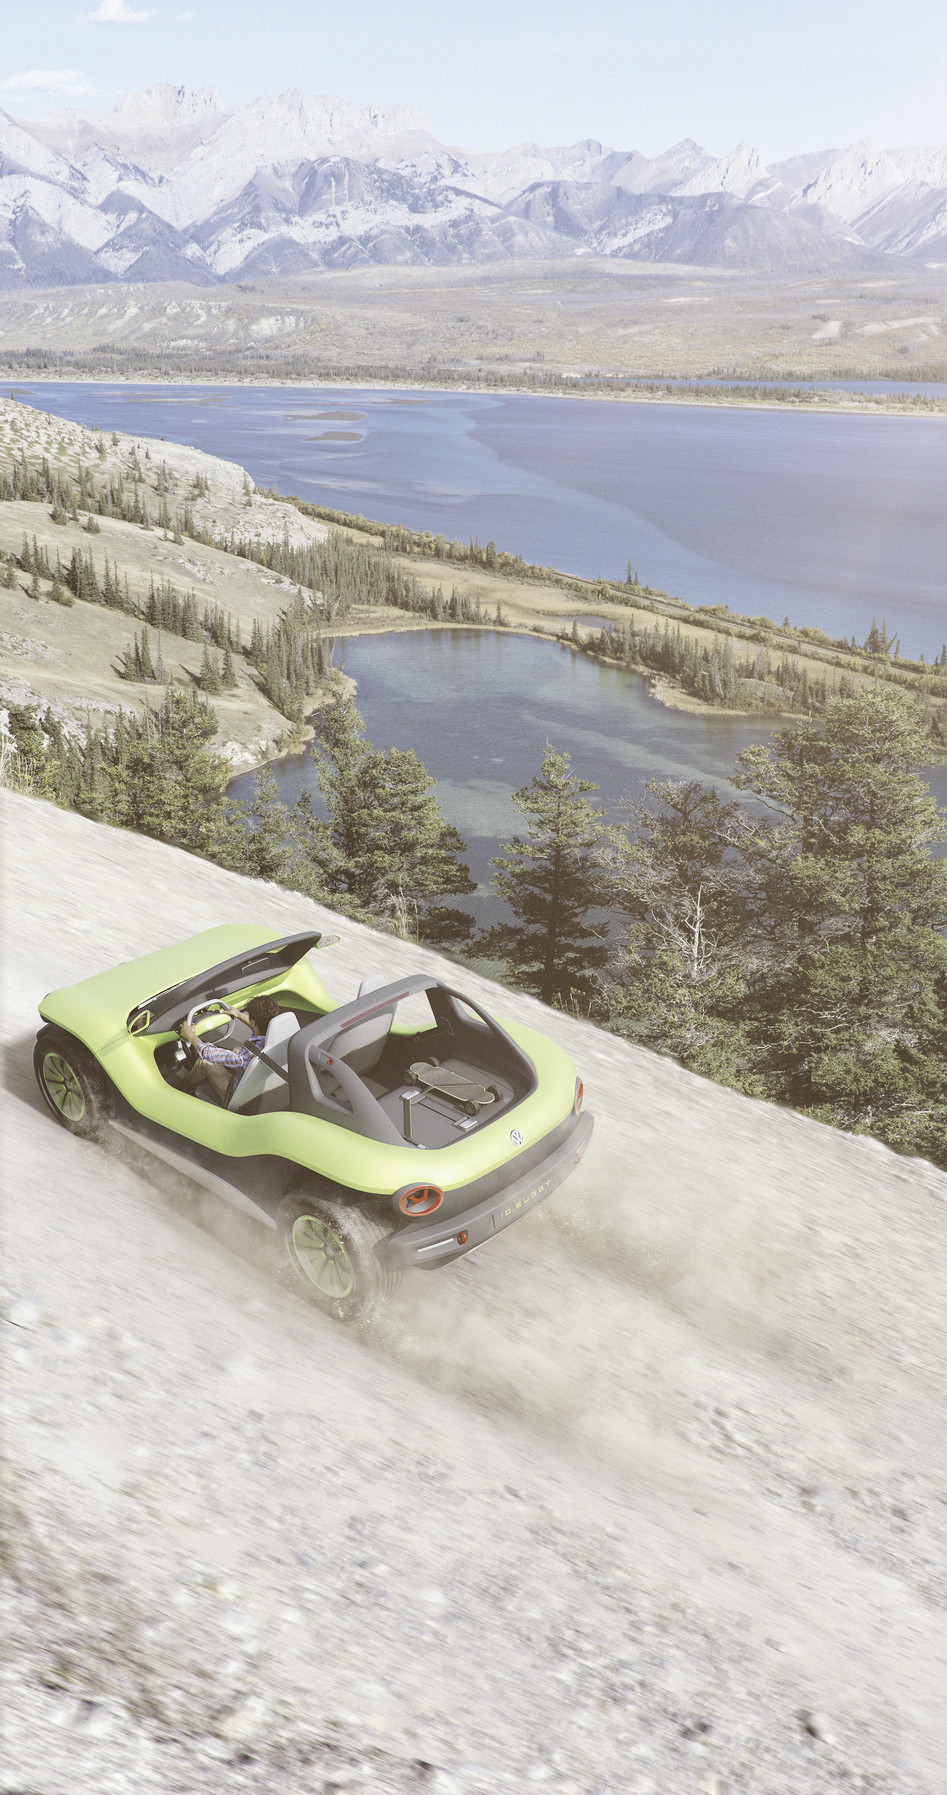 Volkswagen I.D. Buggy overhead in the mountains